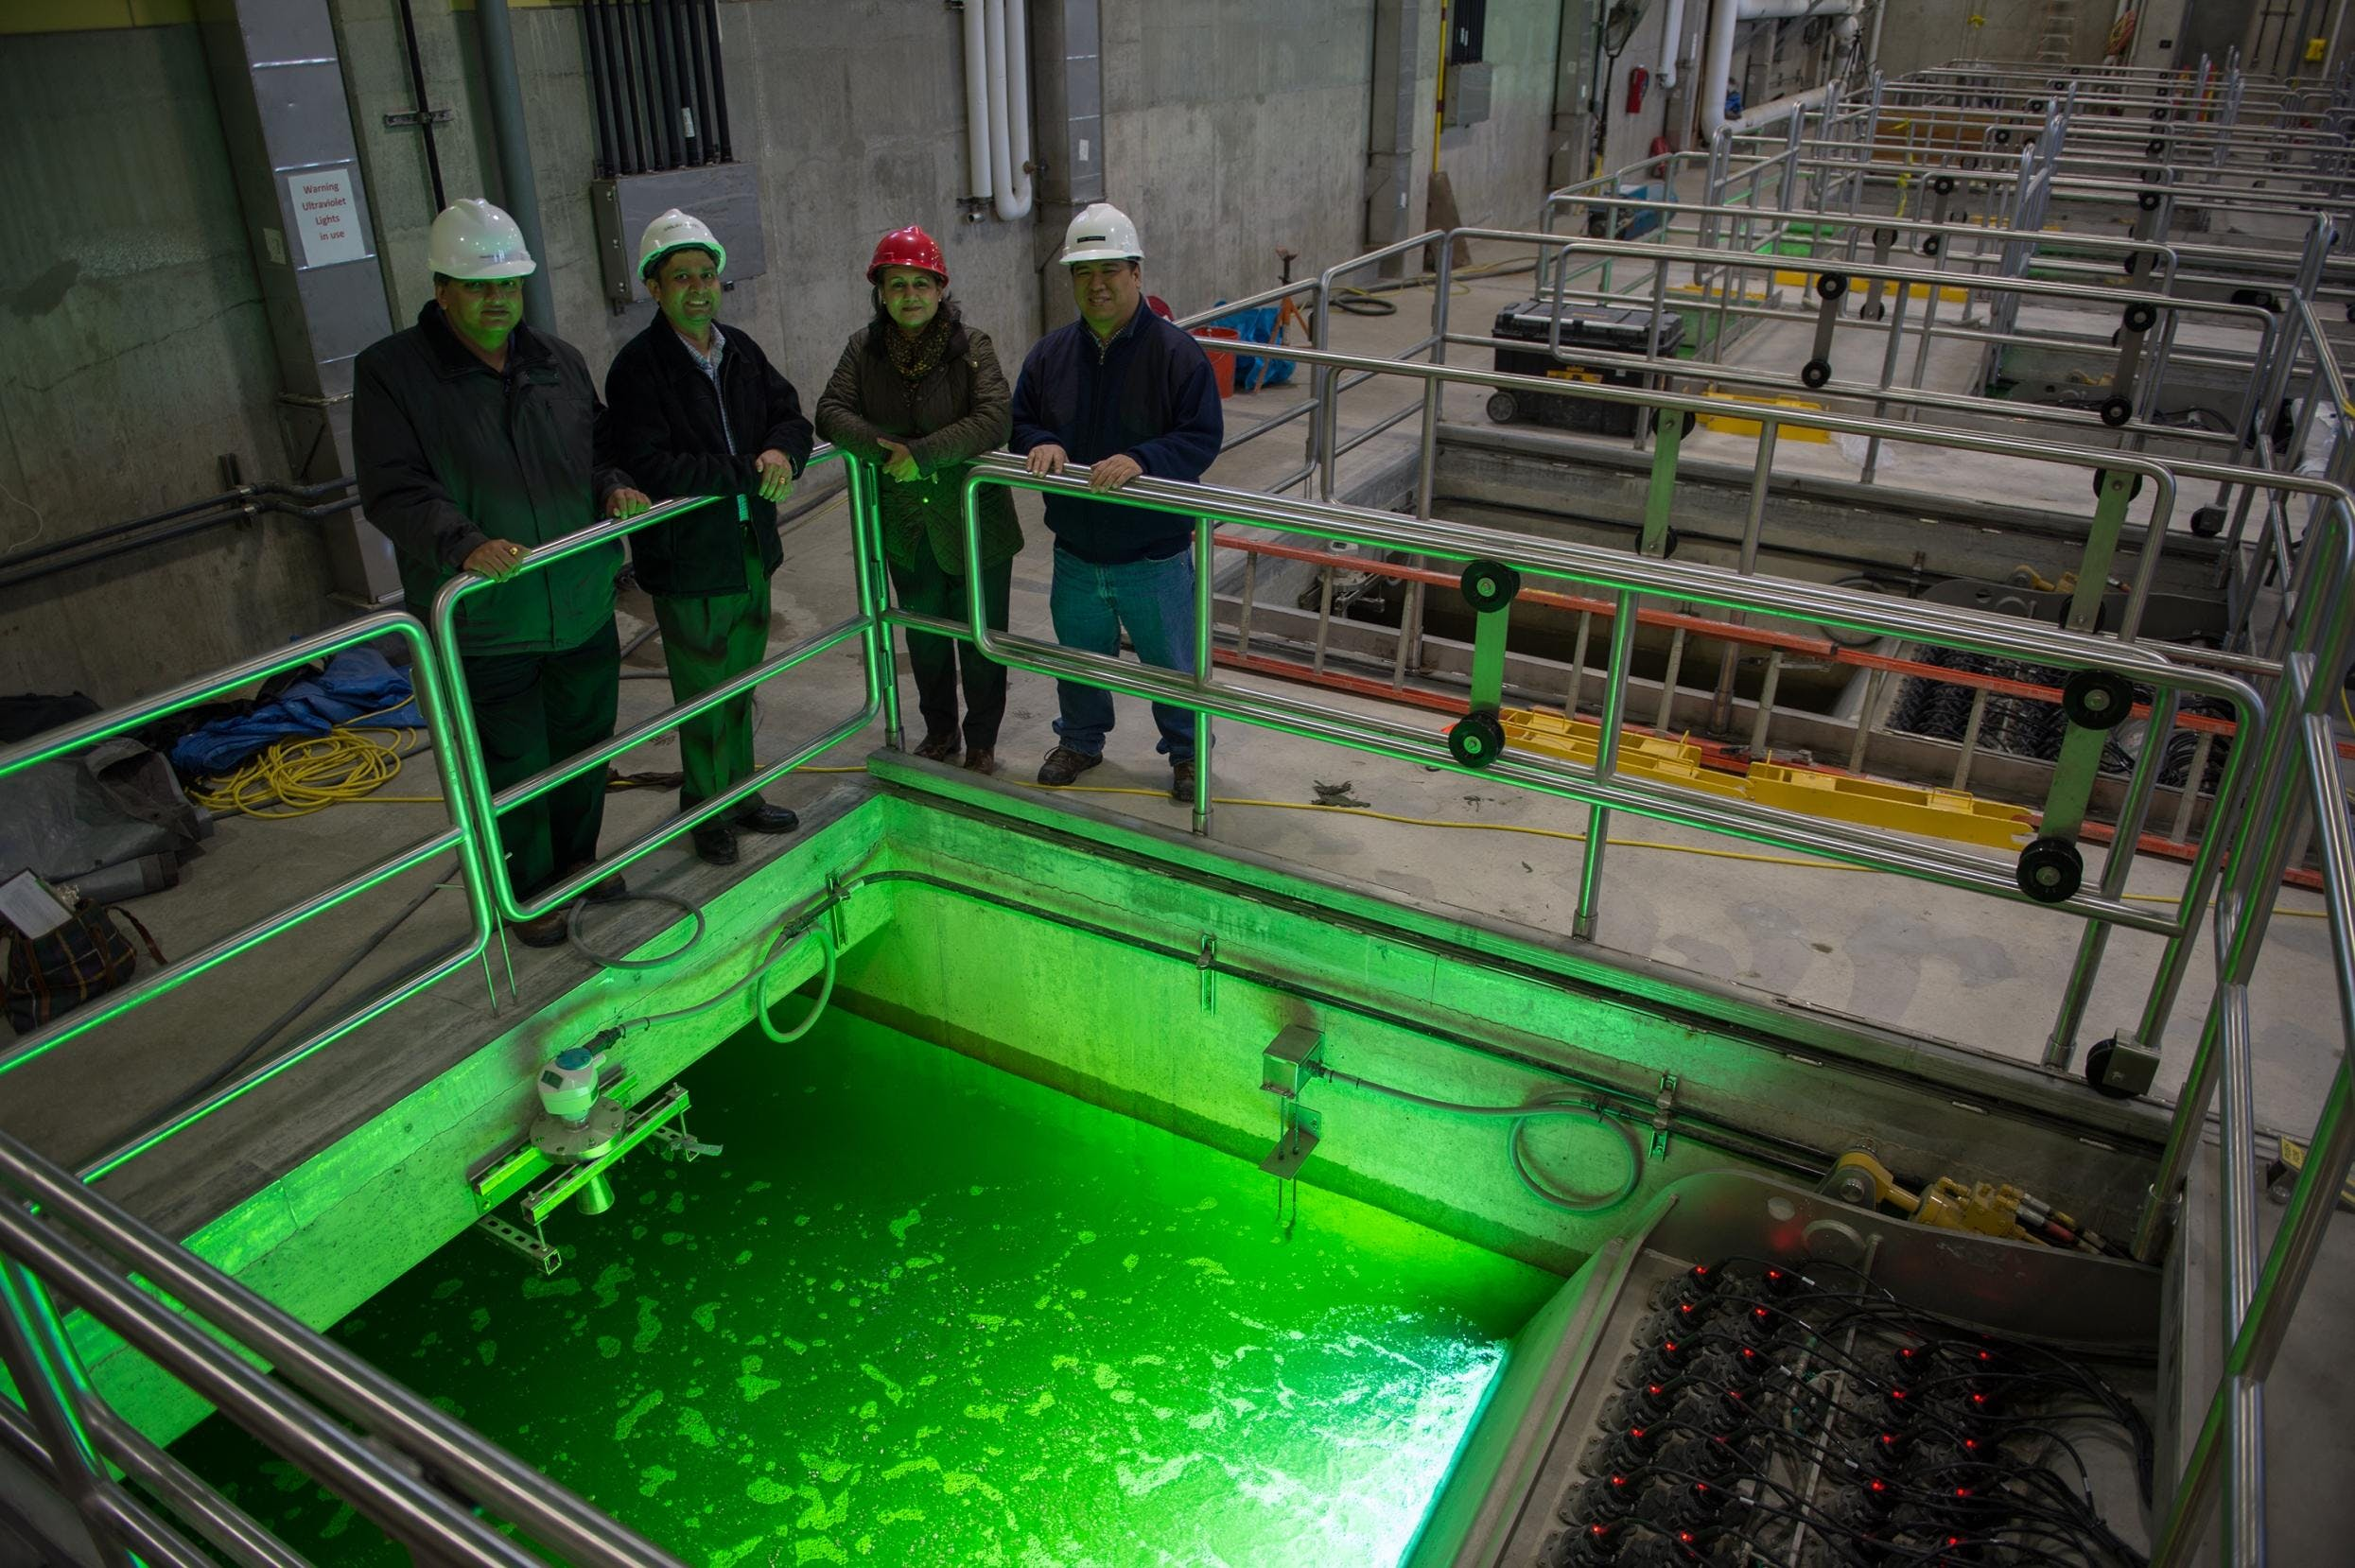 Treating Wastewater with Ultraviolet Rays